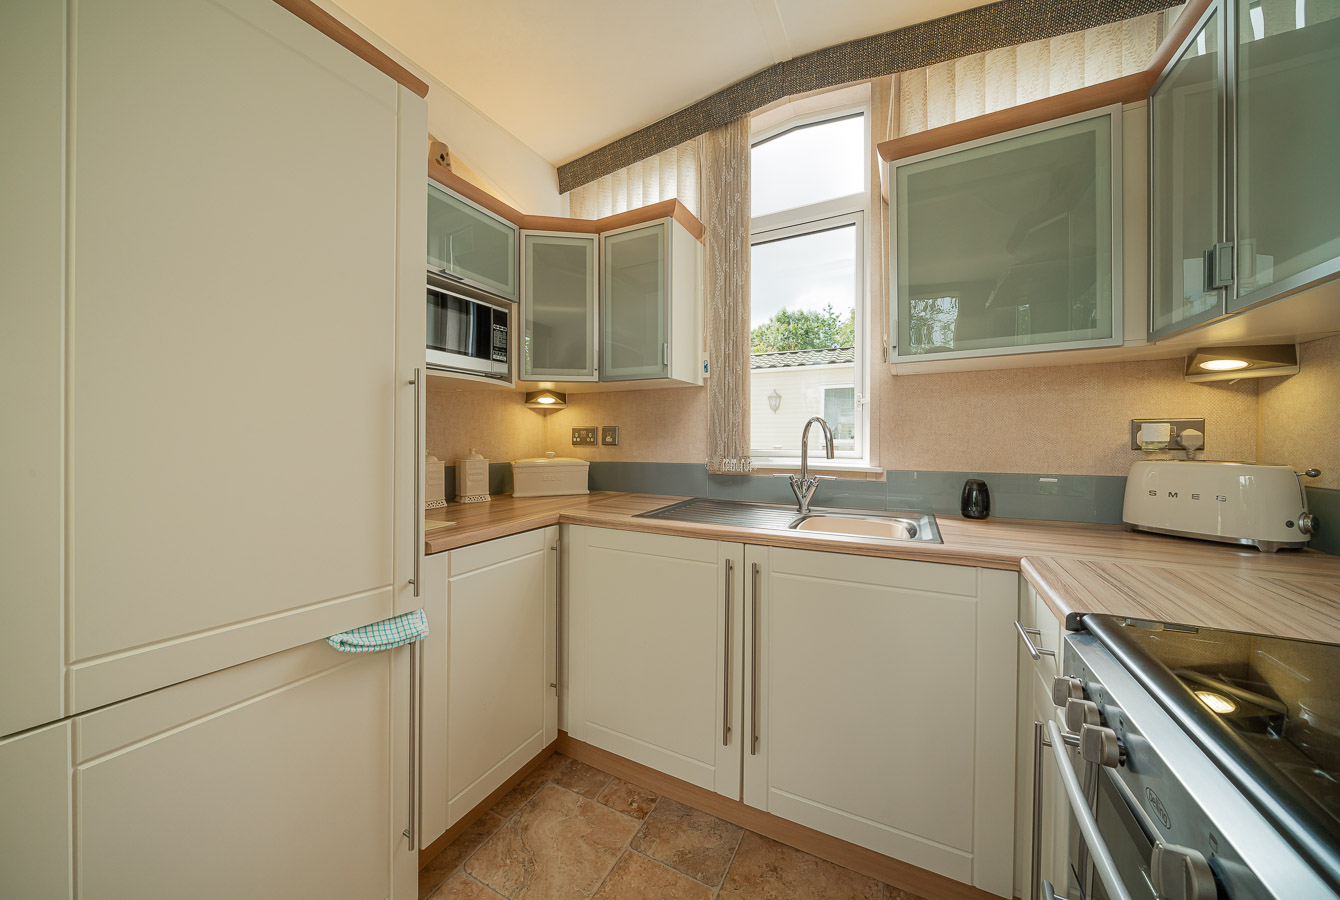 Monkton-Wyld-Static-Mobile-Holiday-Home-Sale-Plot-23-Charmouth-Lyme-Regis-West-Dorset-7